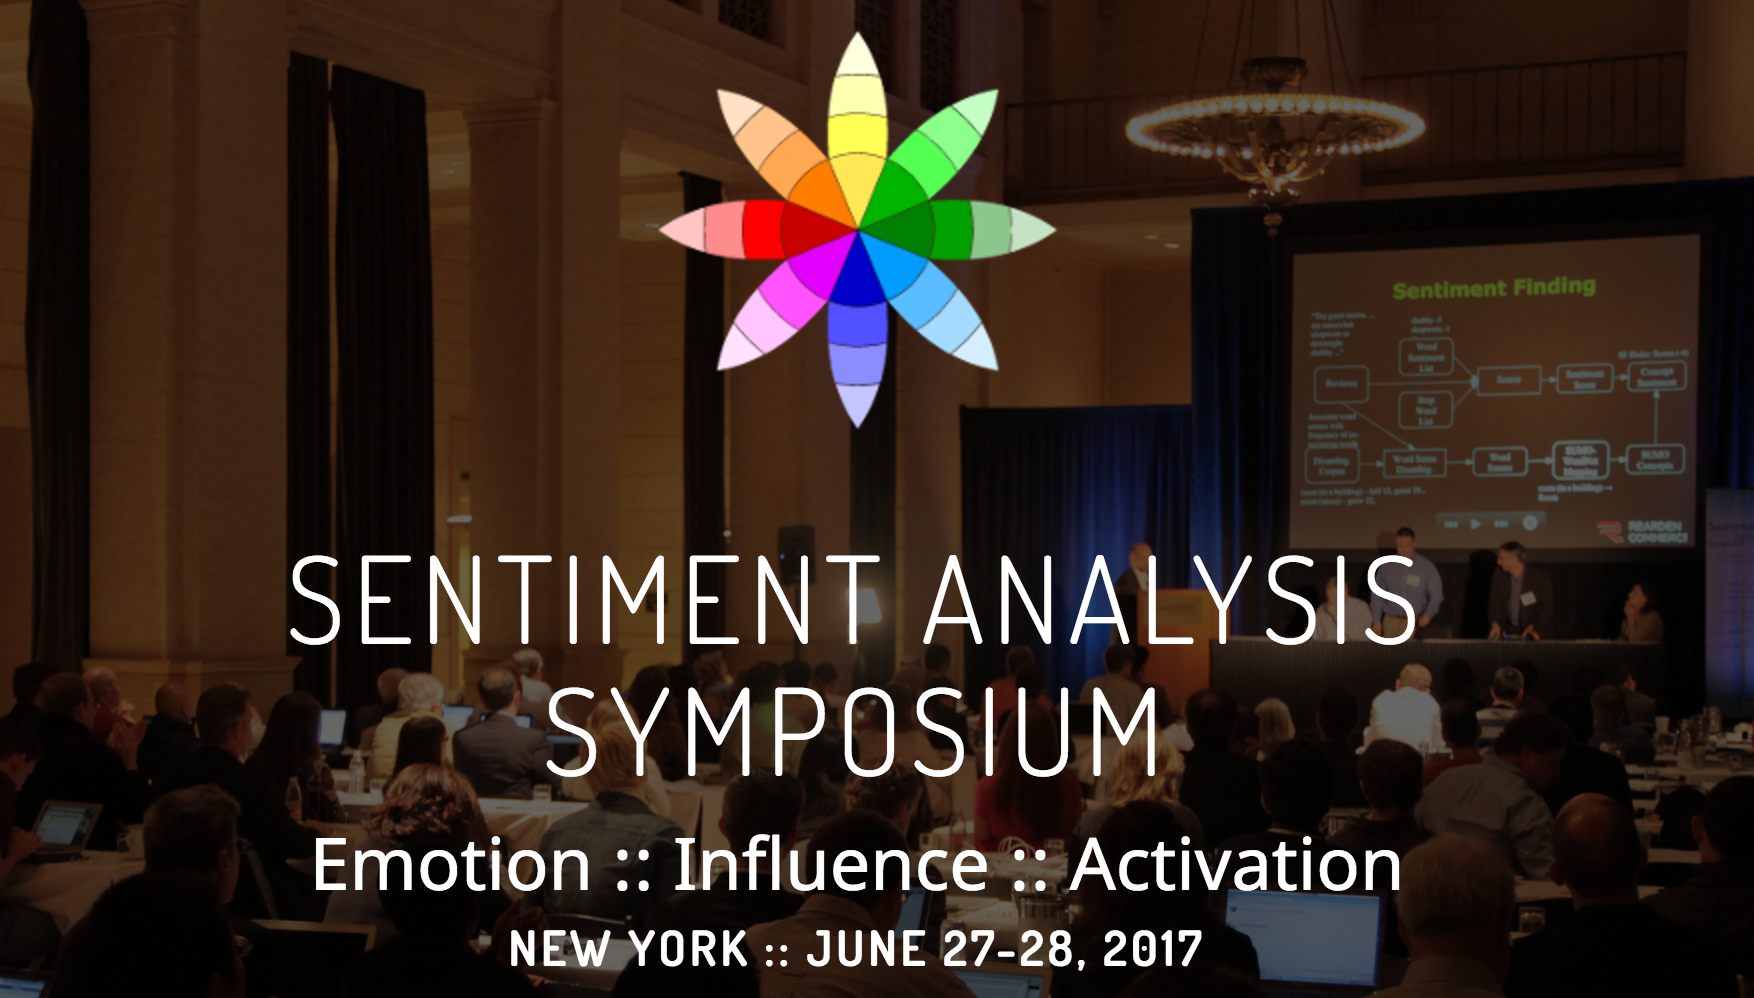 Sentiment Analysis Symposium badge